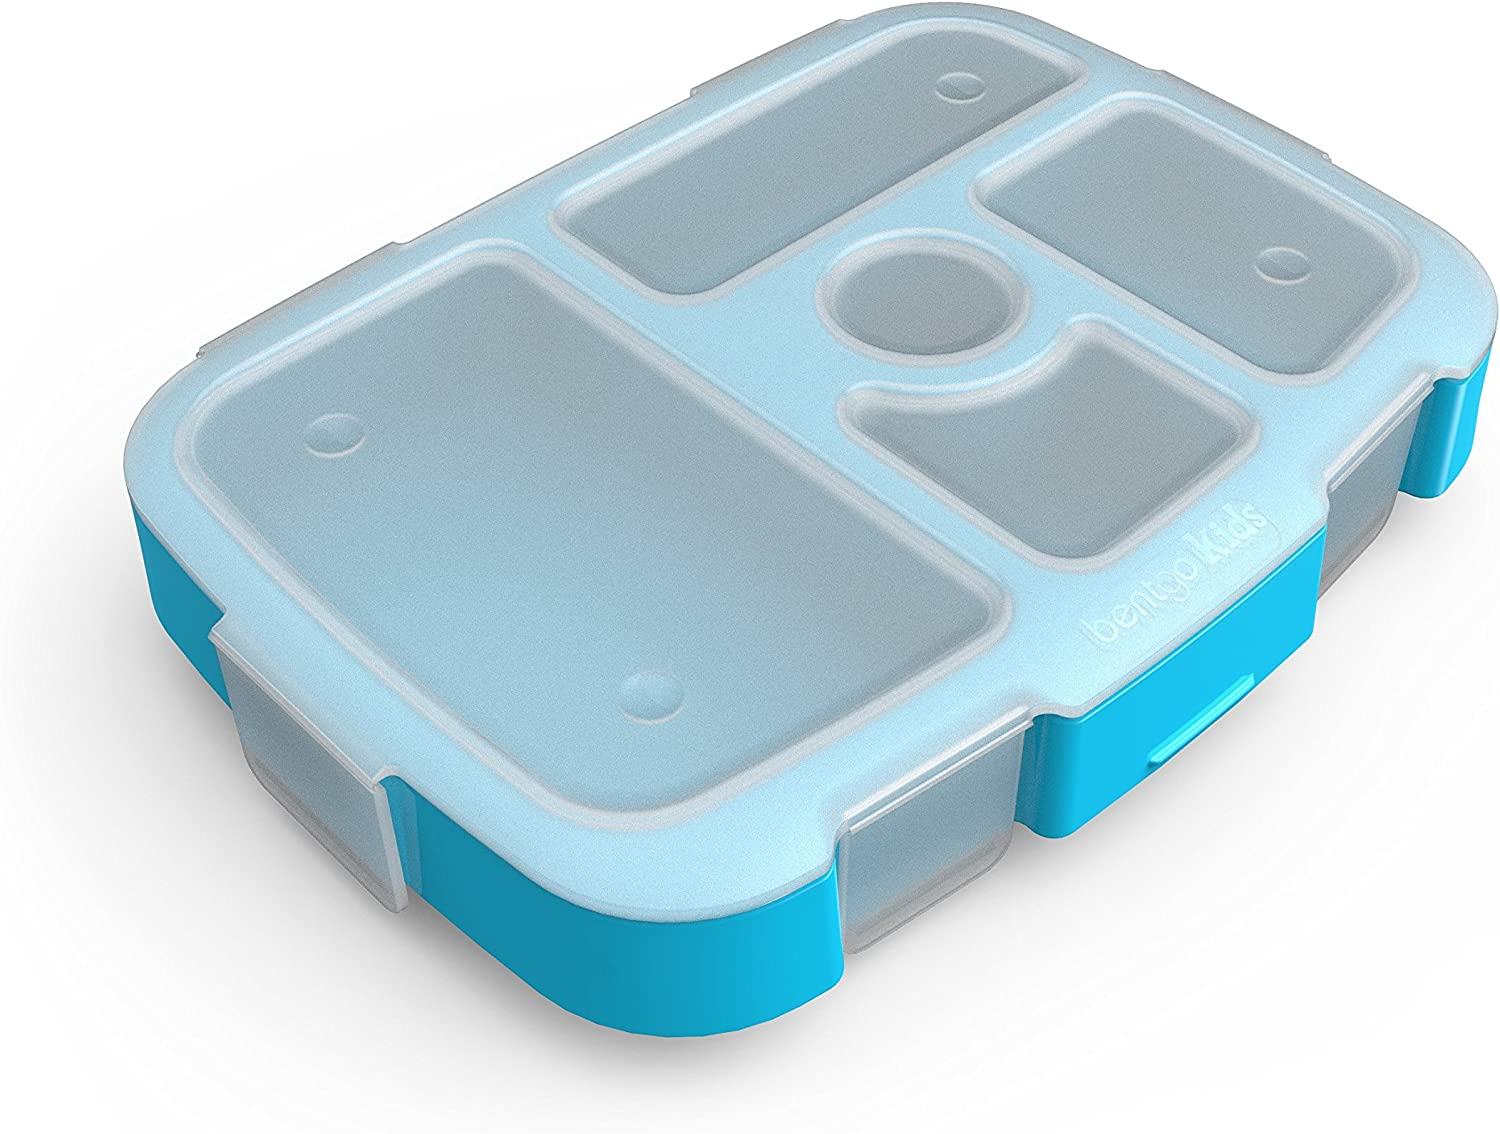 Bentgo Kids Brights Tray (Turquoise) with Transparent Cover - Re